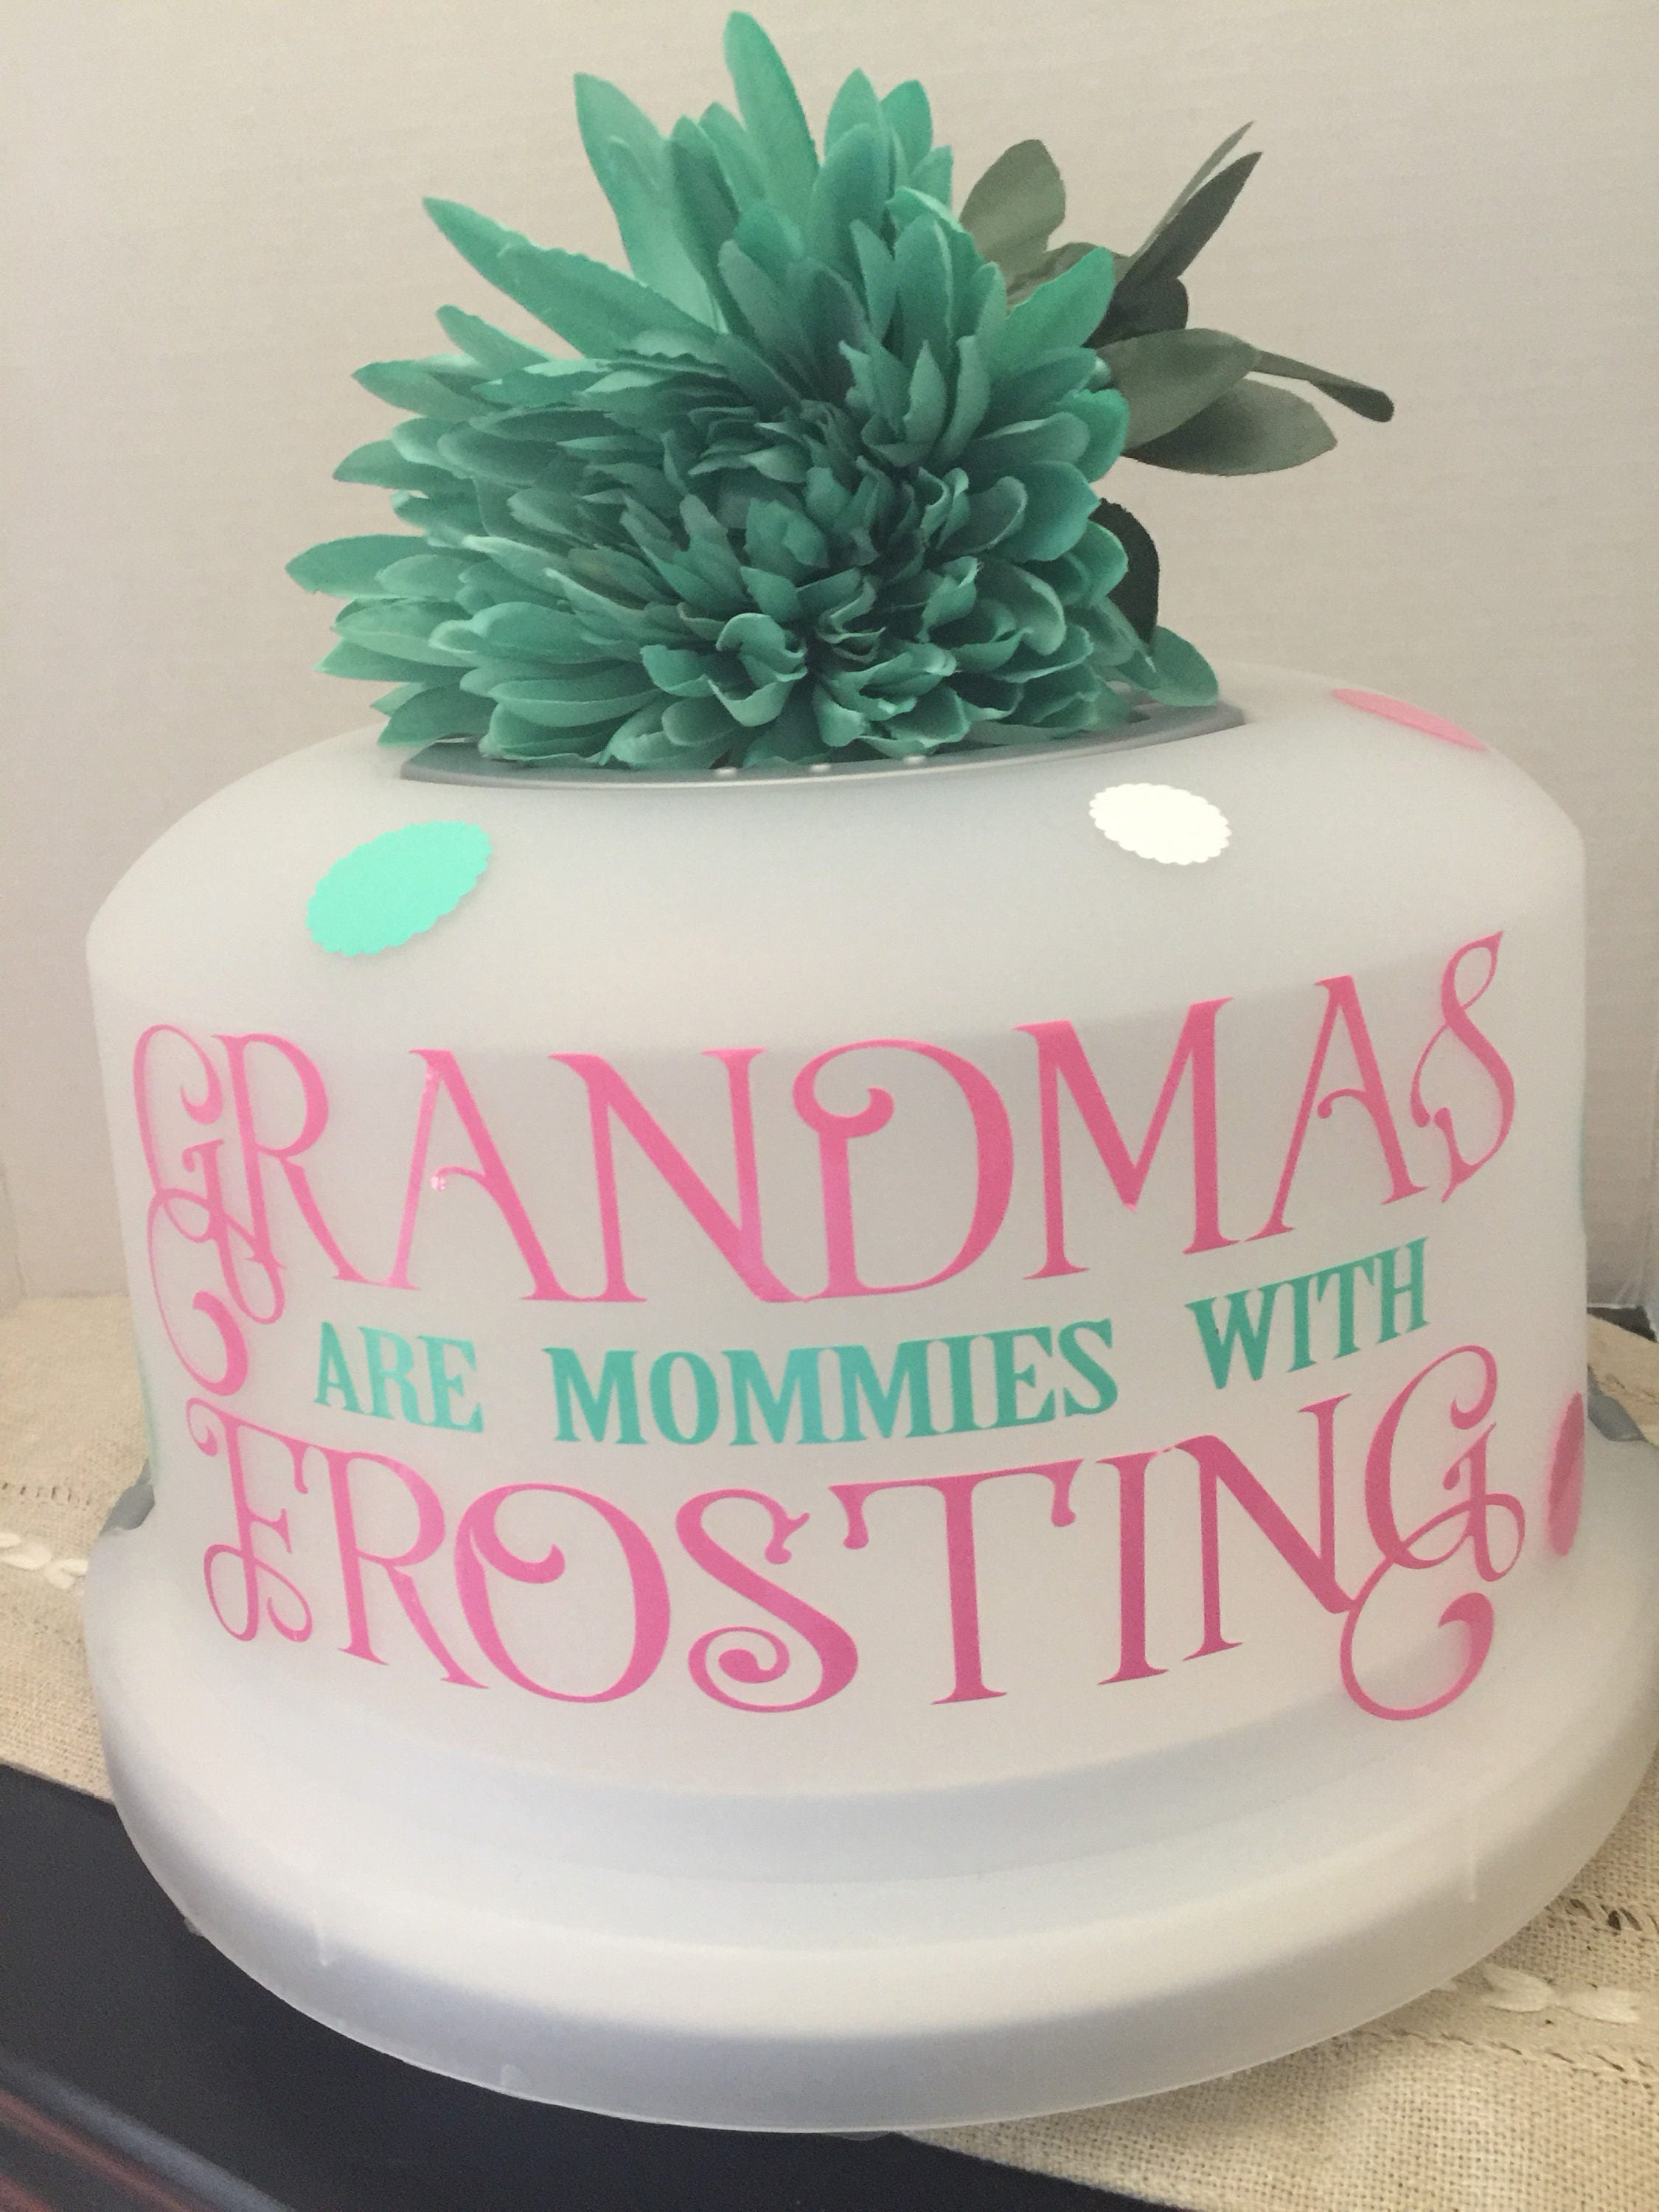 Free shipping cake cover cake carrier grandparents gift gifts free shipping cake cover cake carrier grandparents gift gifts for mom gift for her bridal shower personalized gift negle Image collections